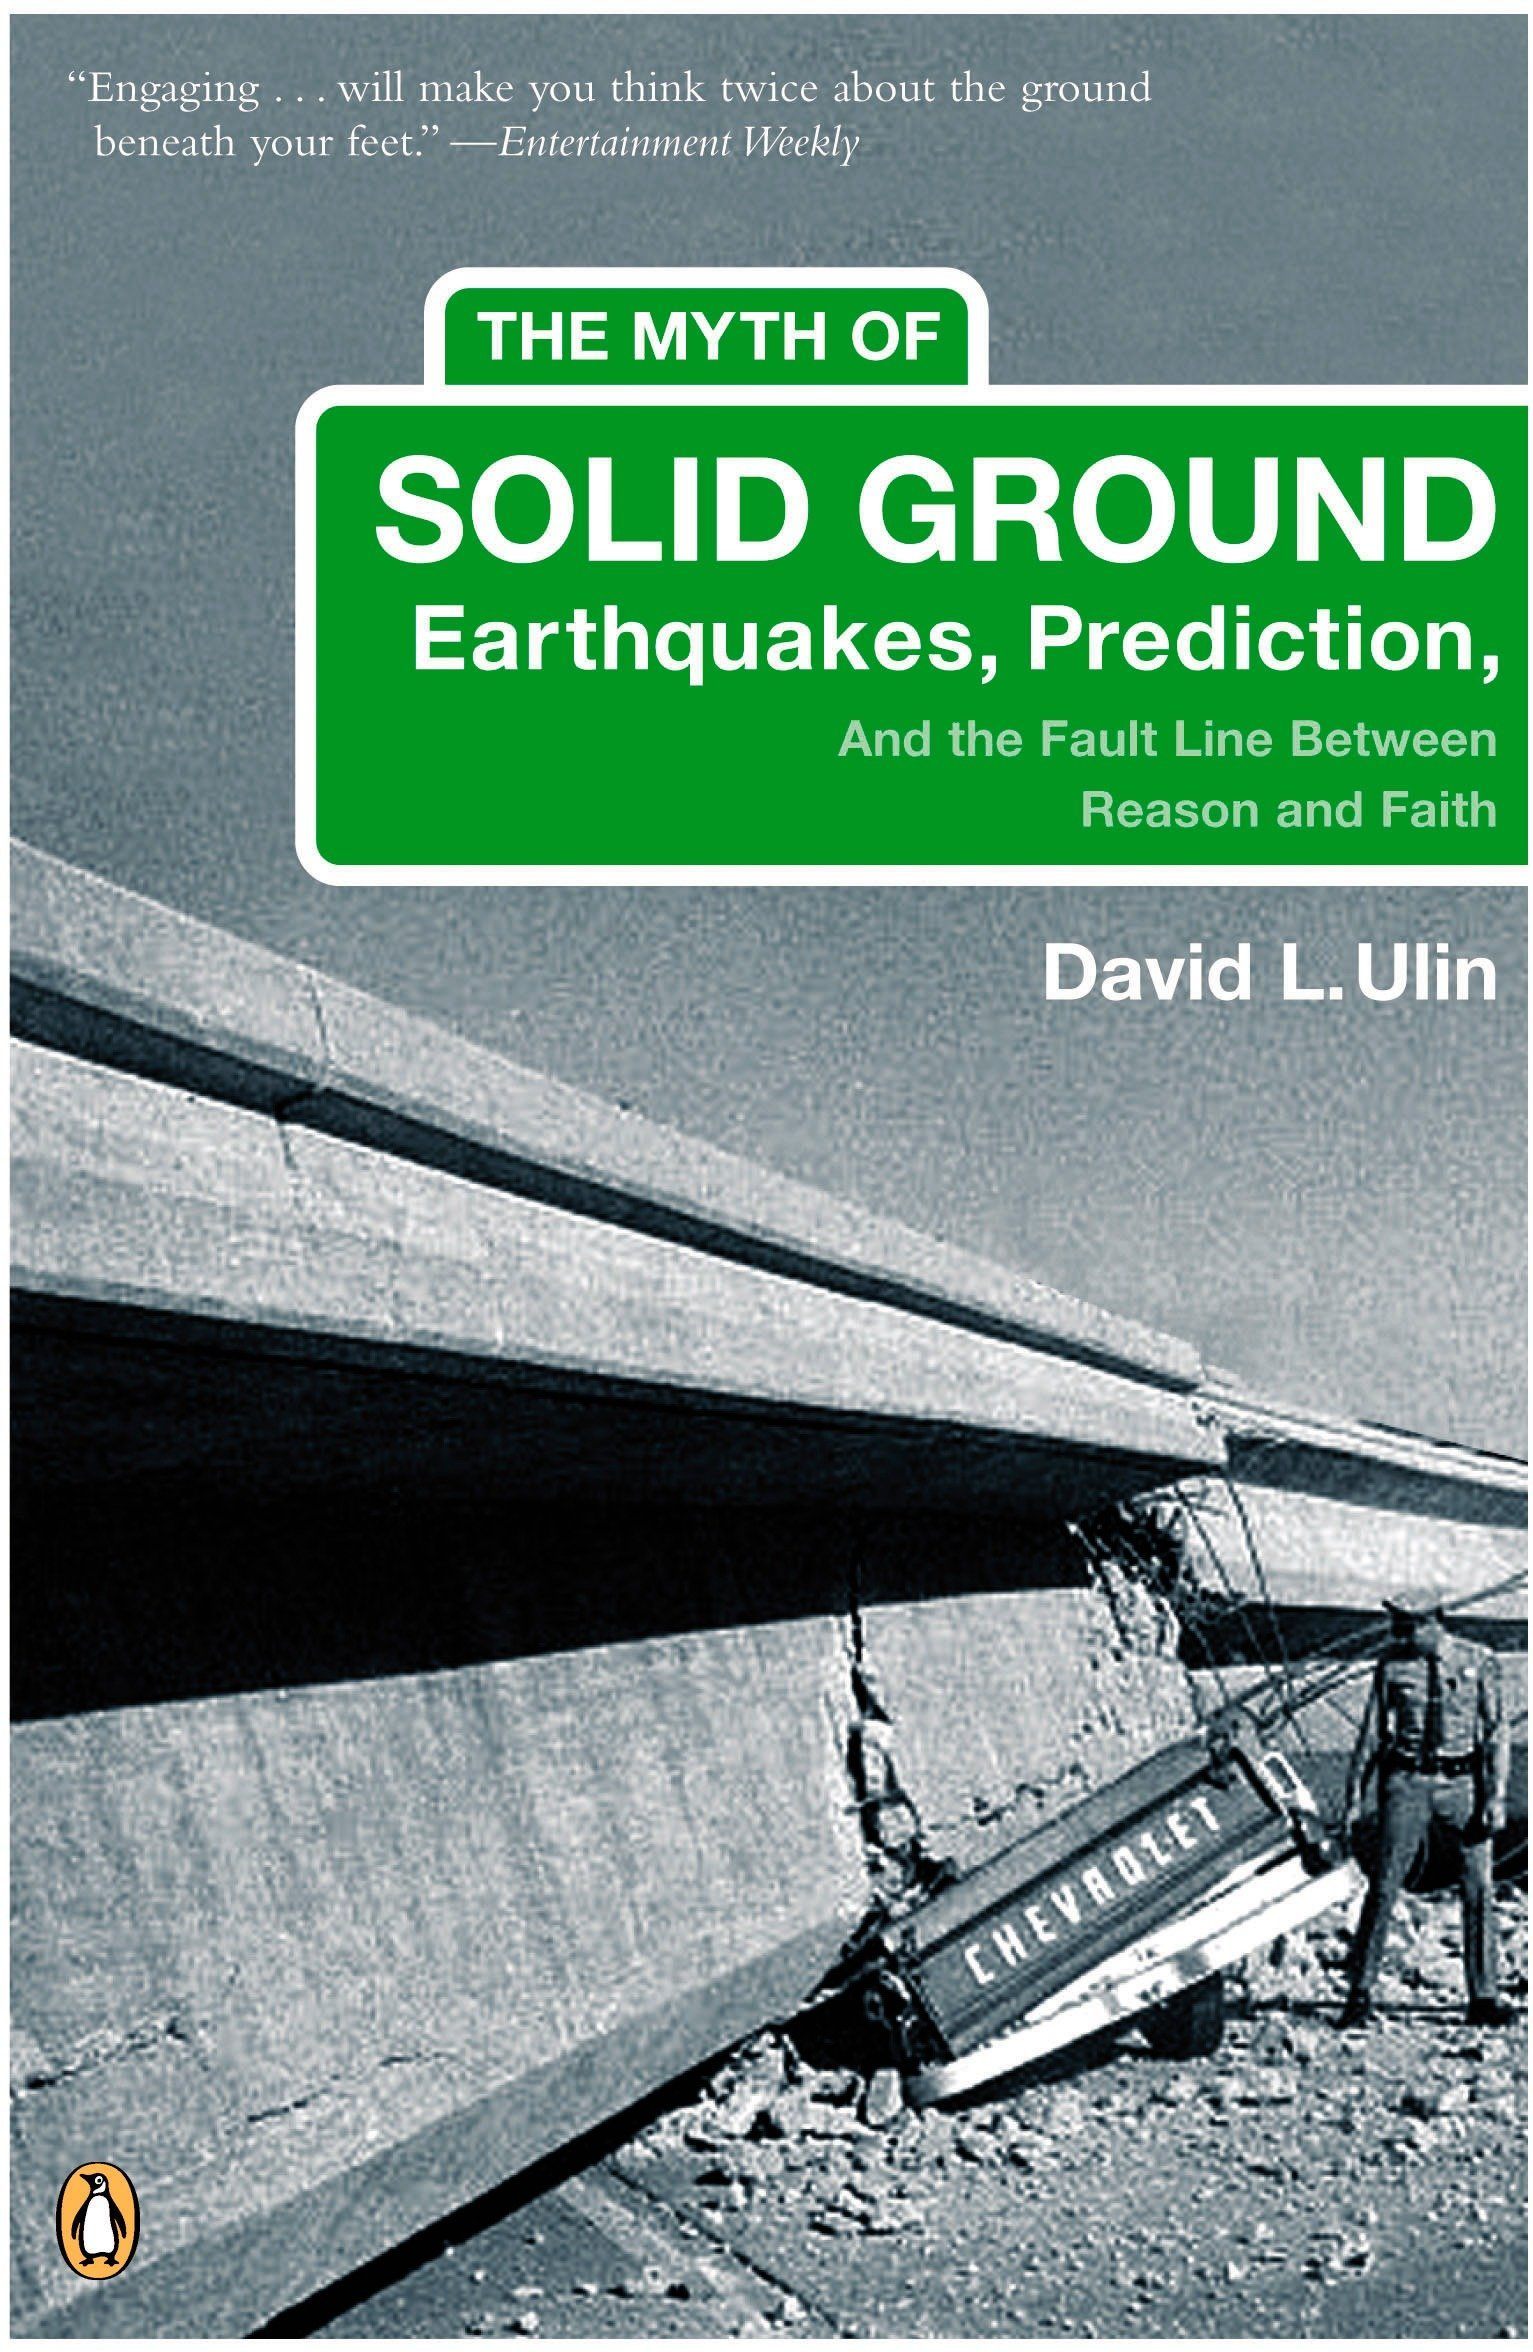 The Myth of Solid Ground: Earthquakes, Prediction, and the